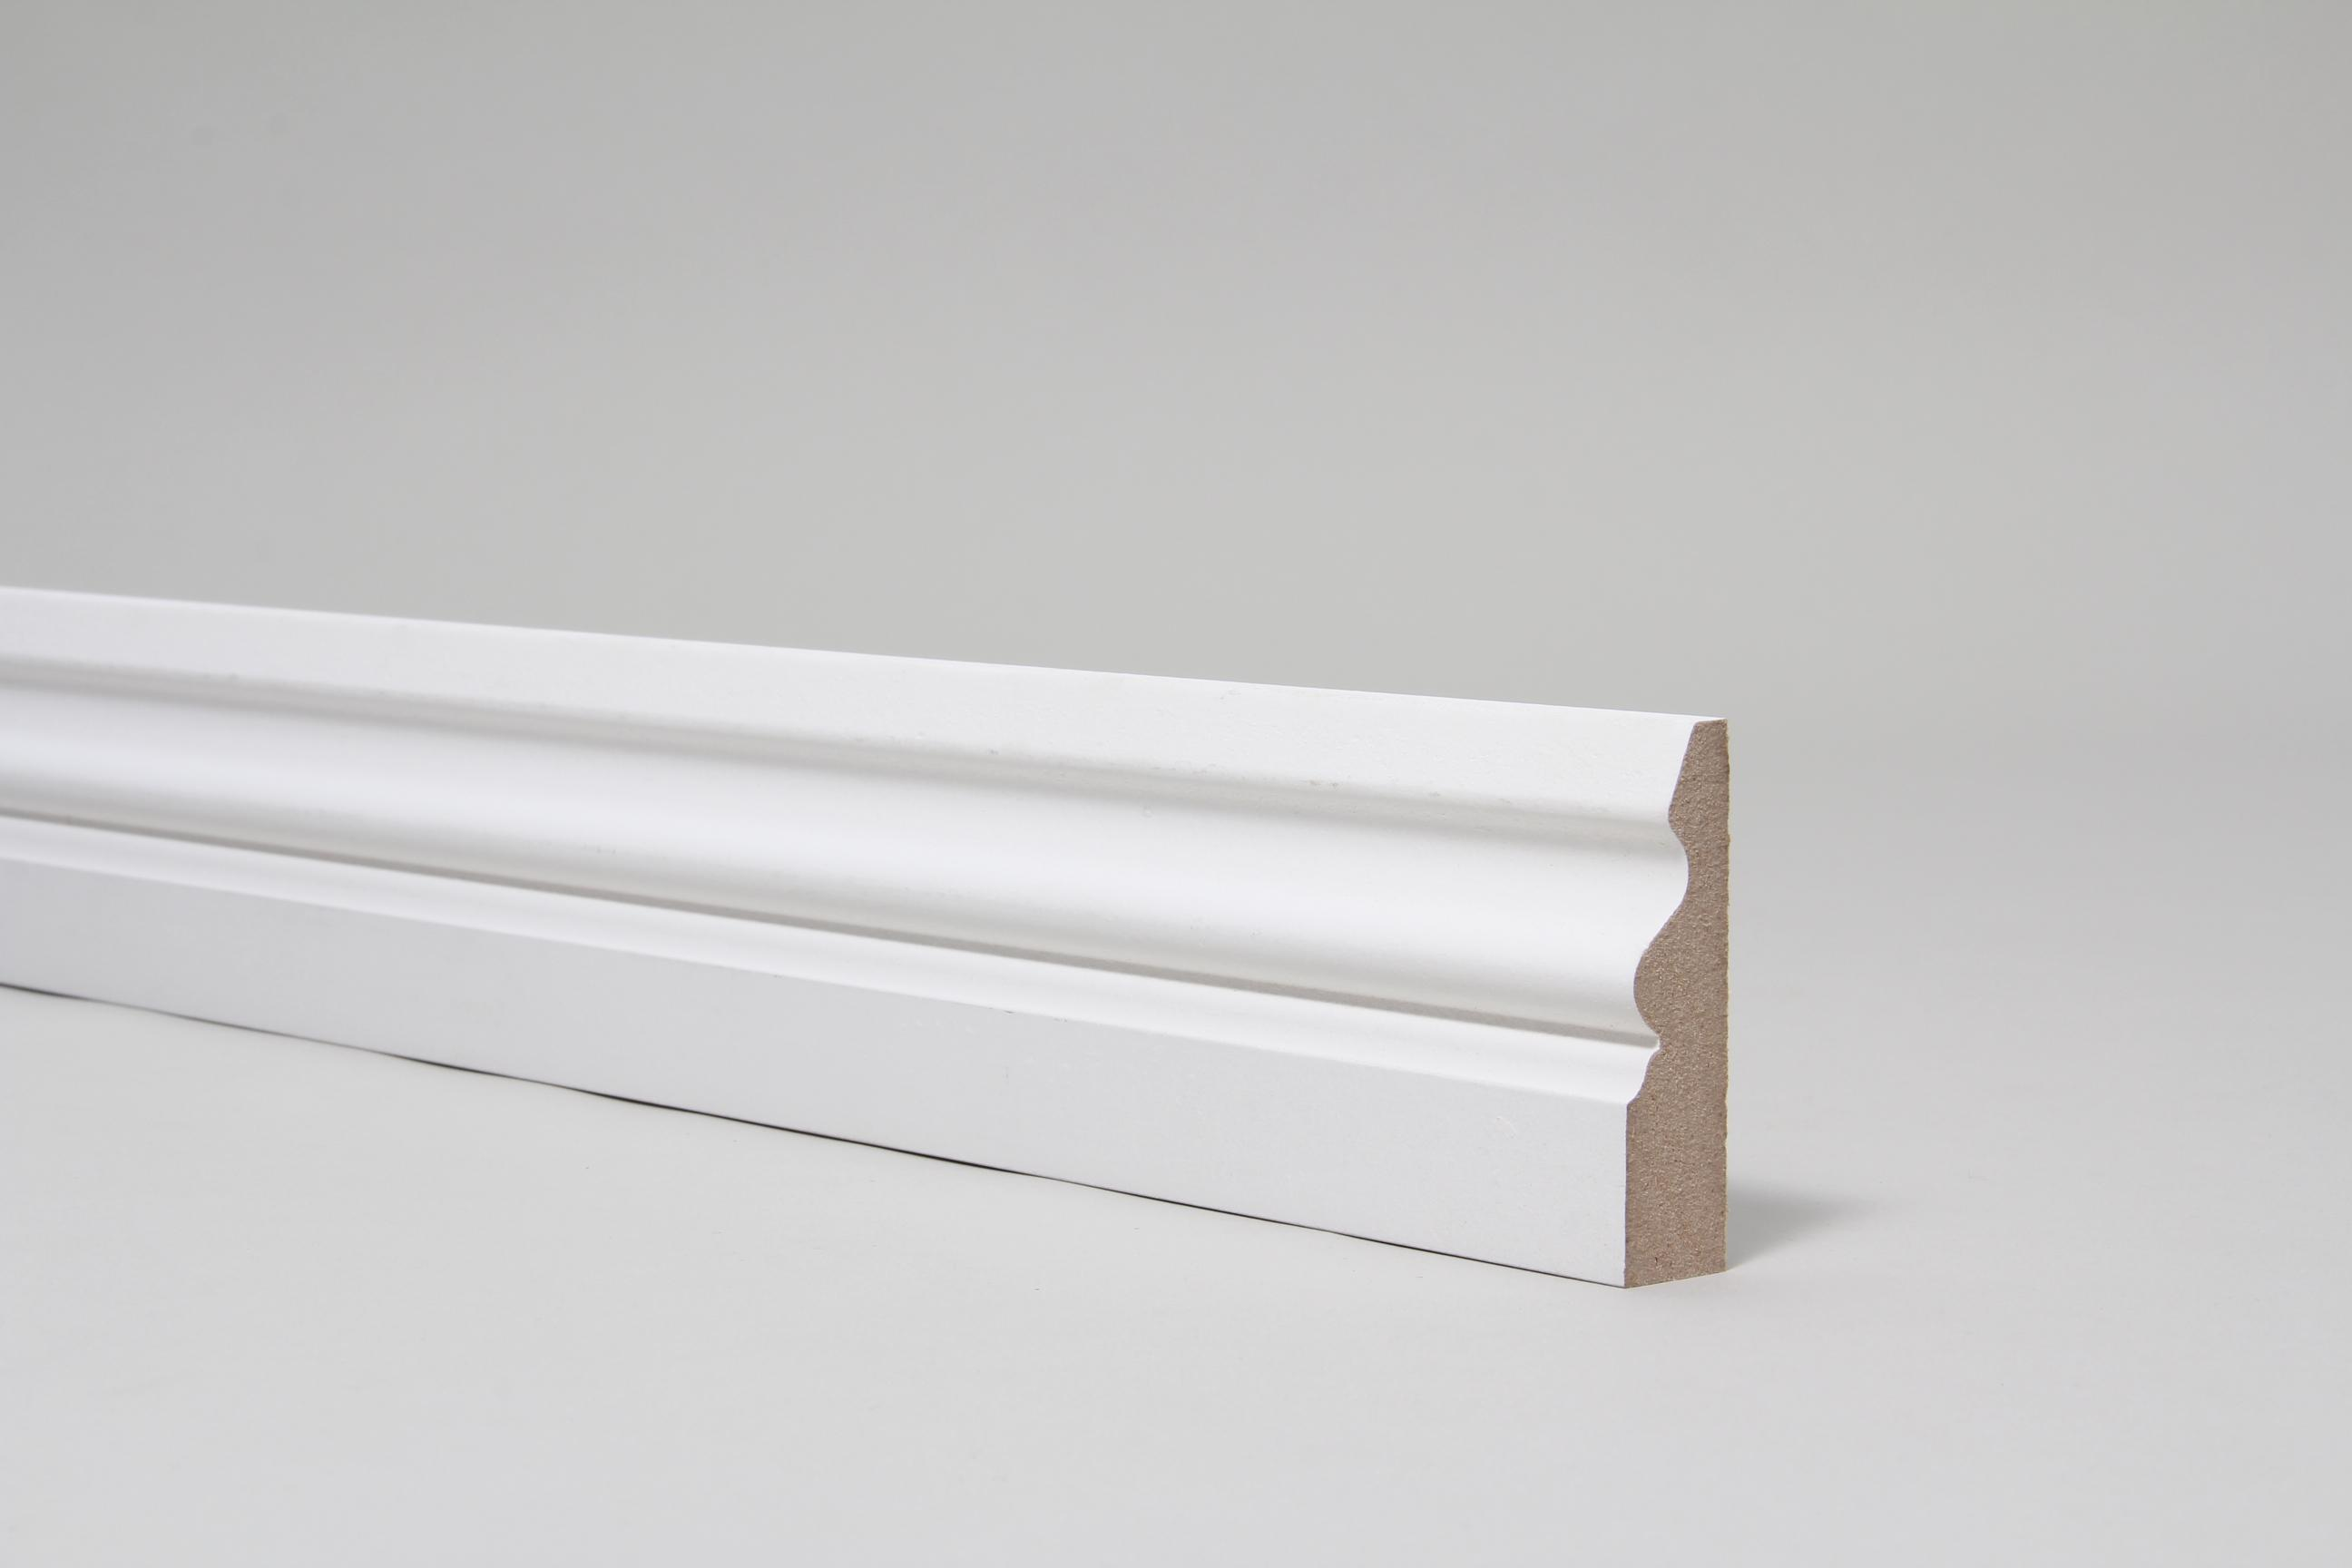 Ogee 4 18mm x 68mm x 4.4 Mtr Primed